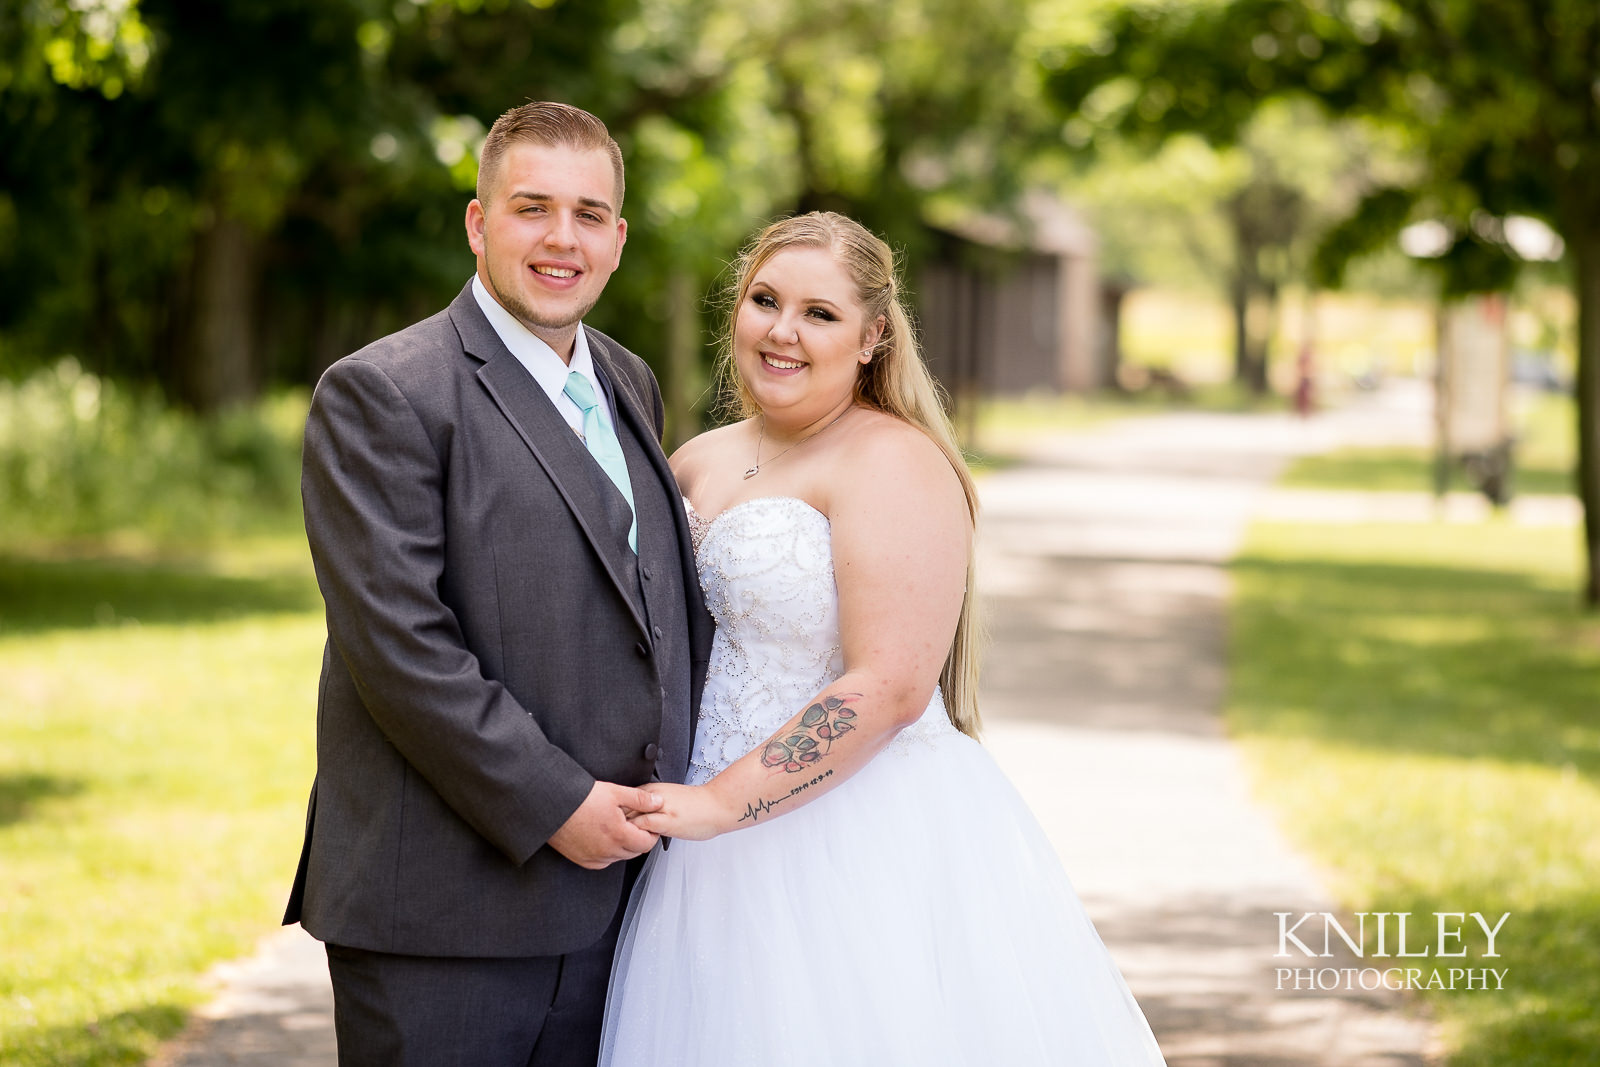 040 - North Ponds Park Wedding Picture - Webster NY - XT2A2815.jpg